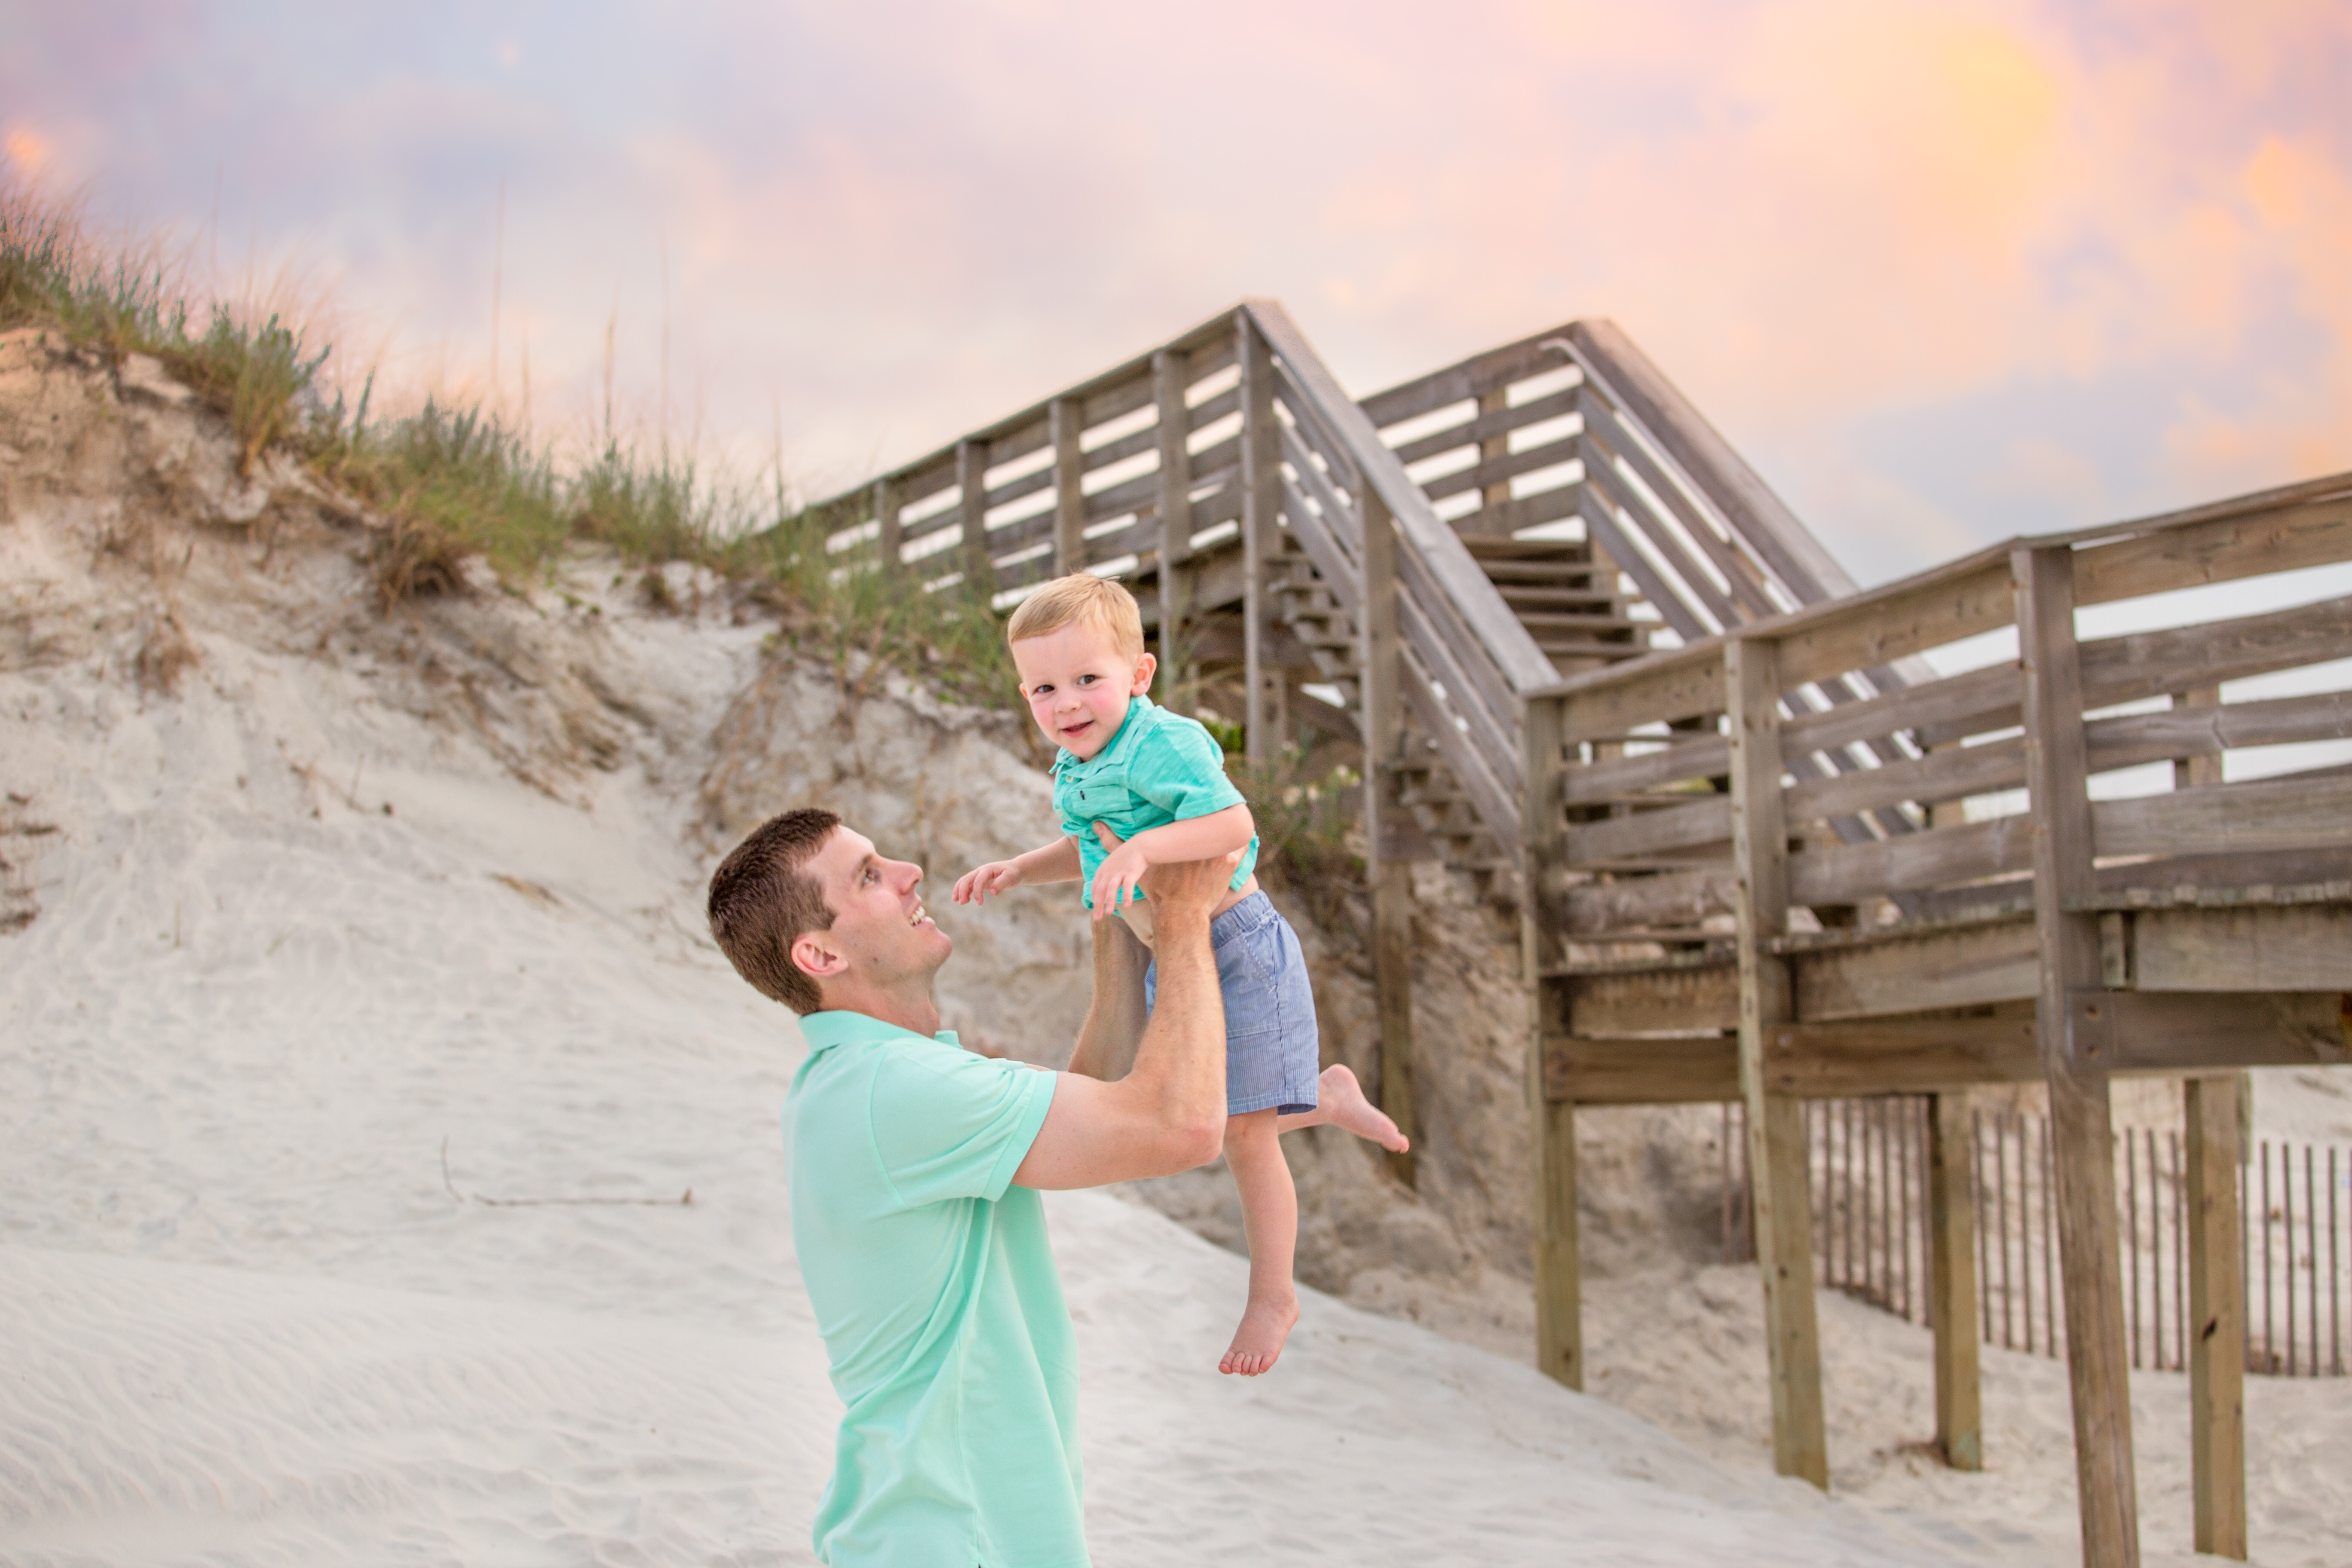 Father and sun play on the beach for family portraits by palm shores photographer